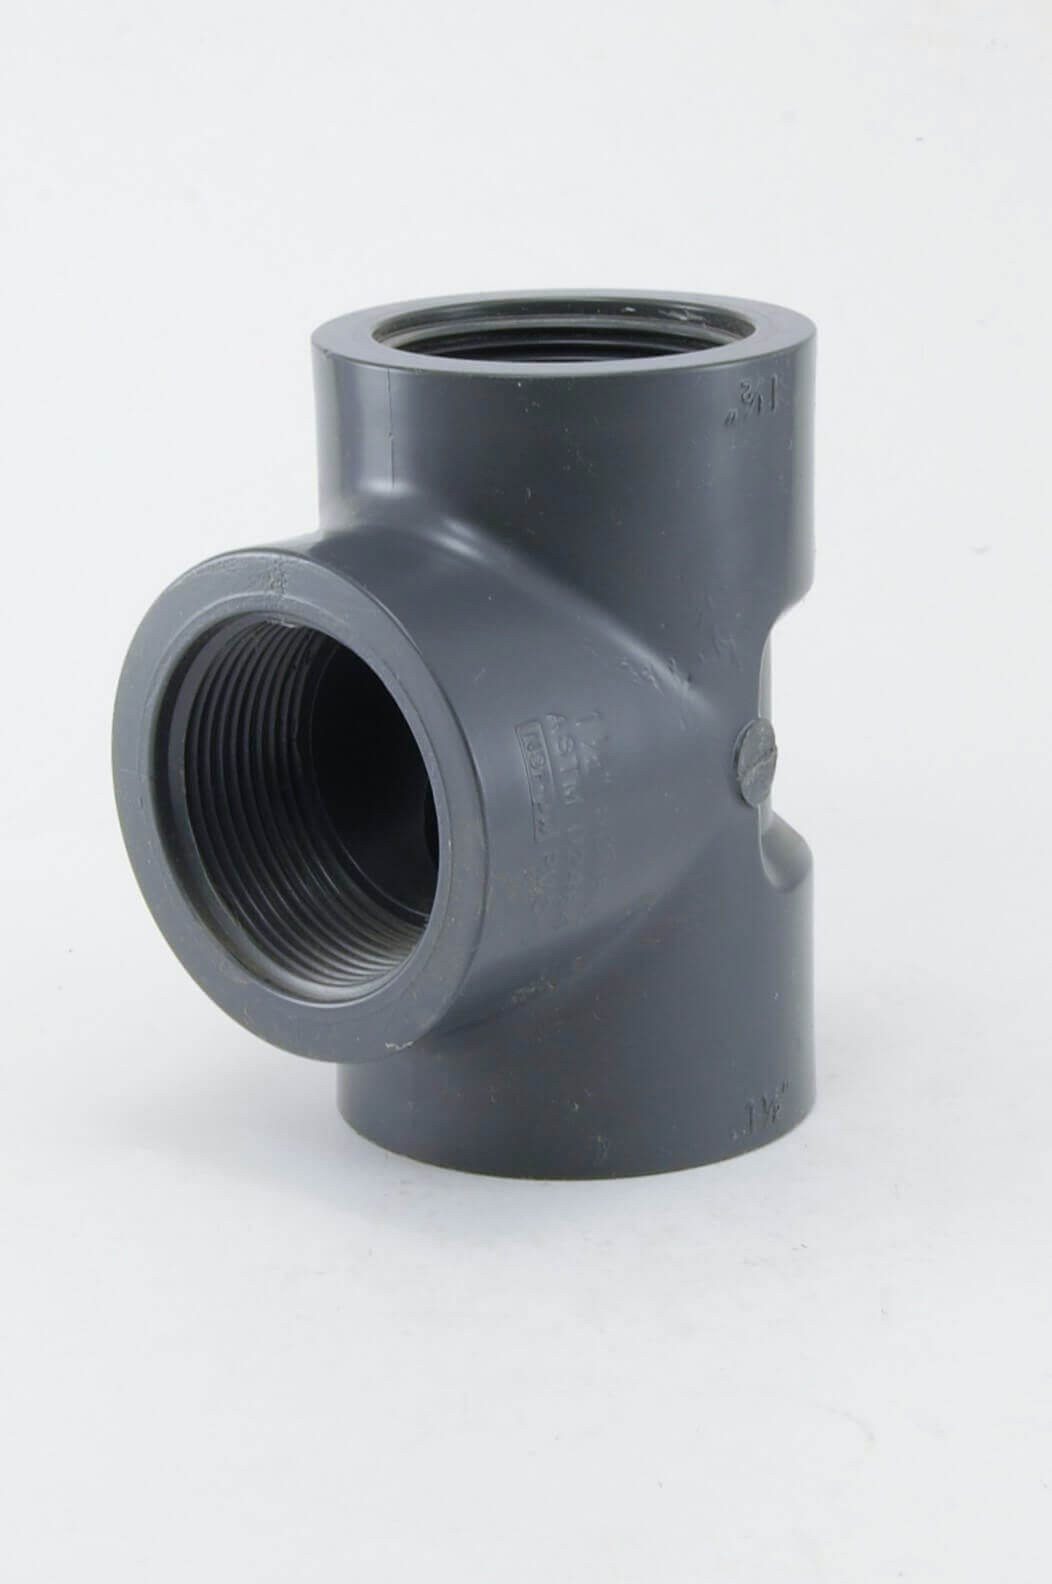 Sch 80 Grey Pvc Tee Fpt X Fpt X Fpt Schedule 80 Fittings